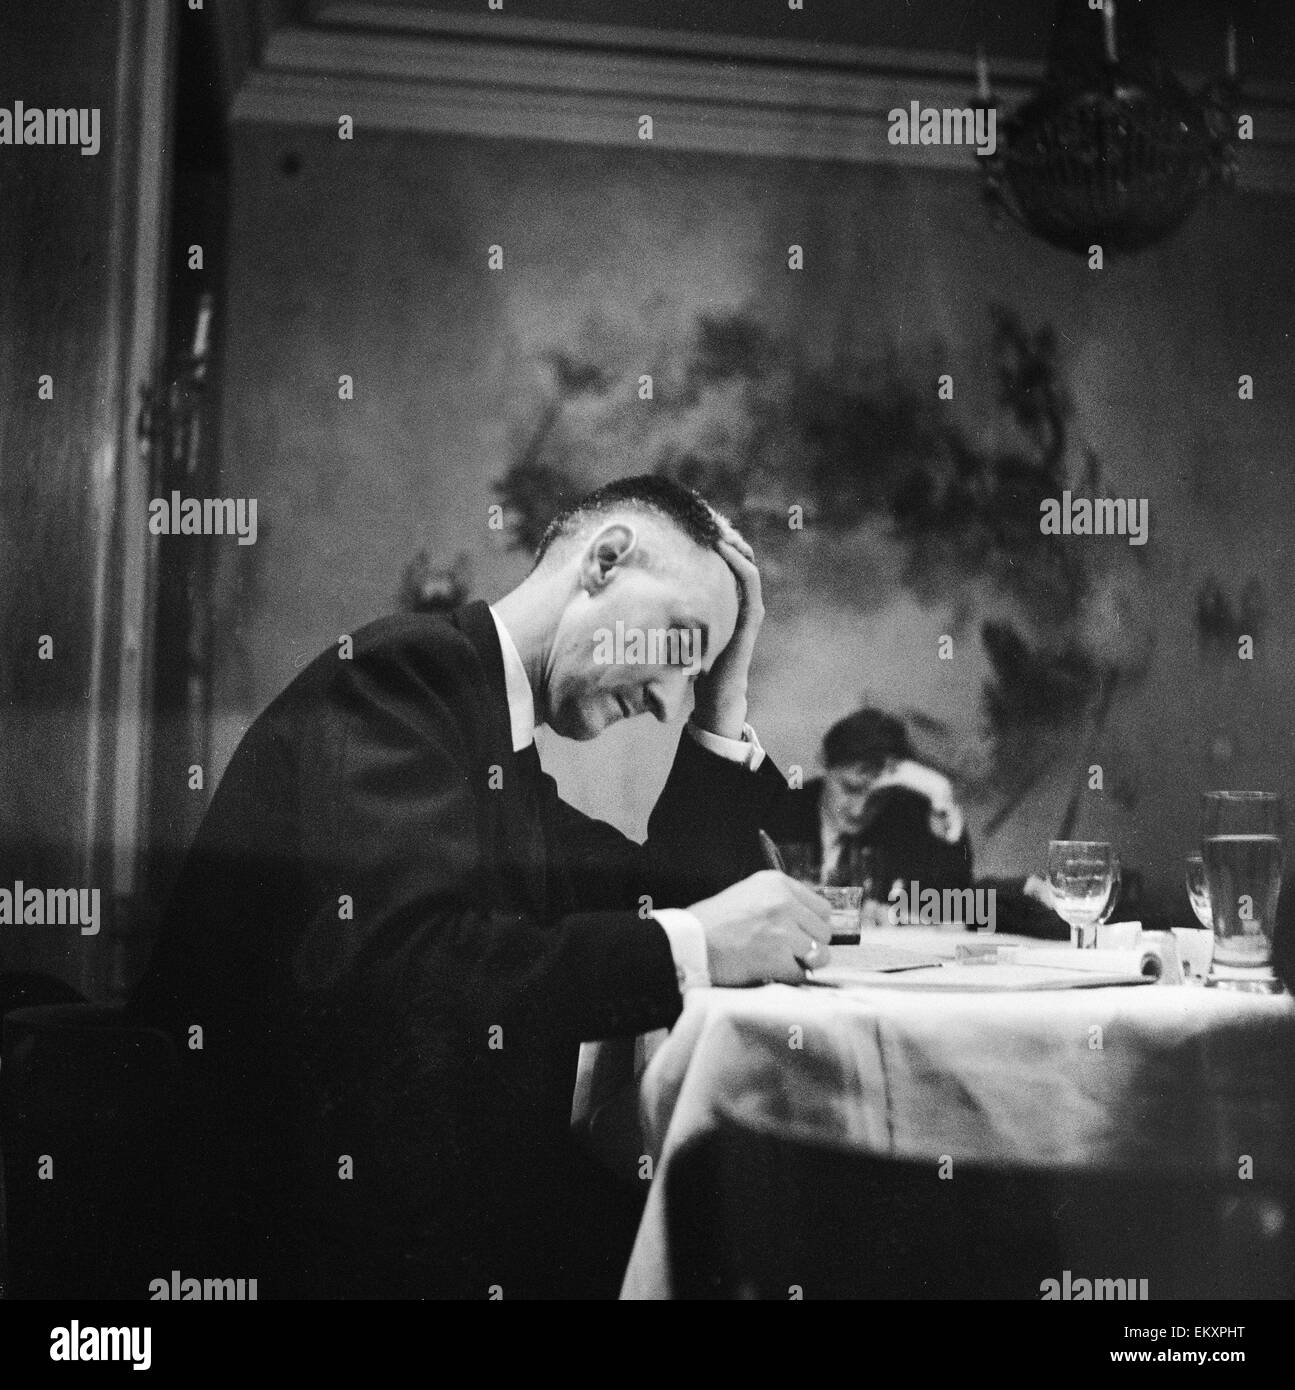 Hungarian Revolution. An unidentified Hungarian man writing at a table in a restaurant. 31st October 1956. - Stock Image